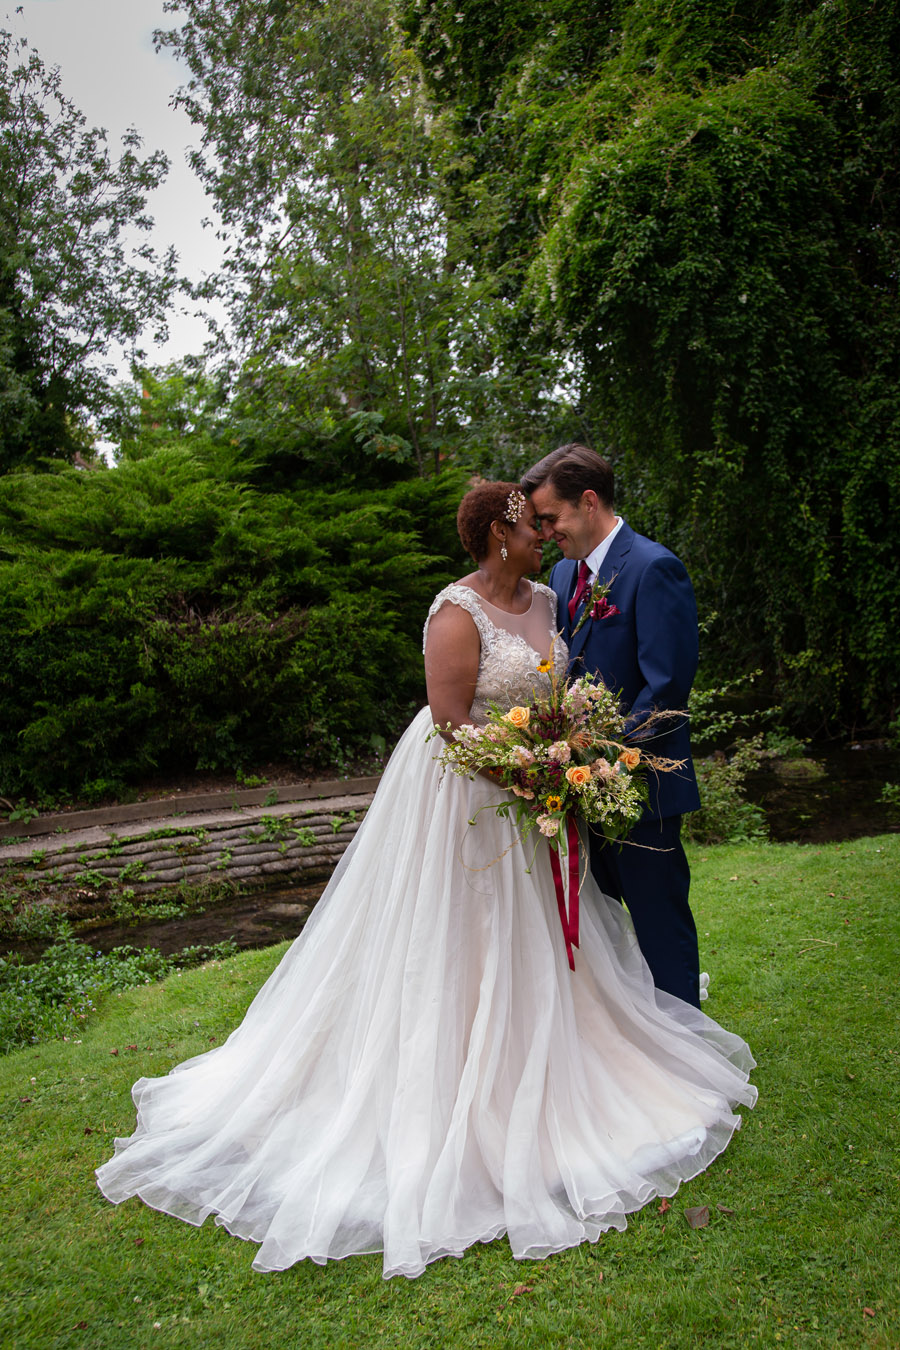 A Magical Wedding World with a Cascade of Colours from Passionate Reds through to the Palest Pinks, with Barefoot Photography (13)